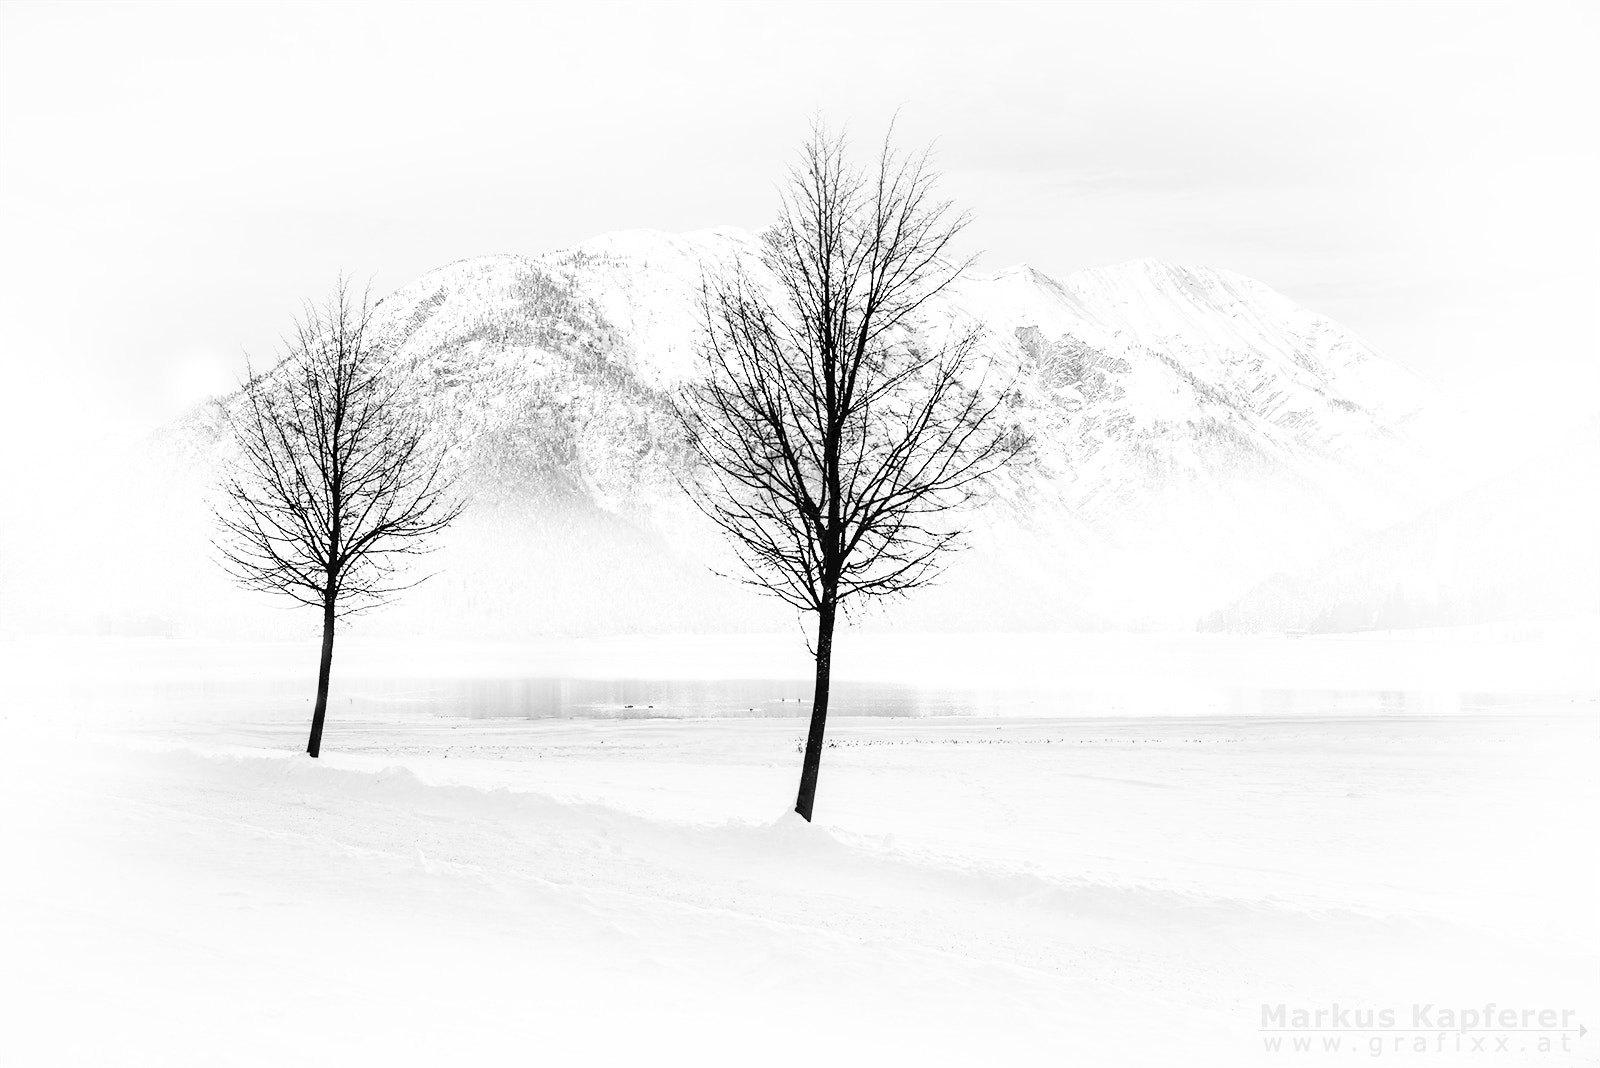 Photograph Trees by Markus Kapferer on 500px